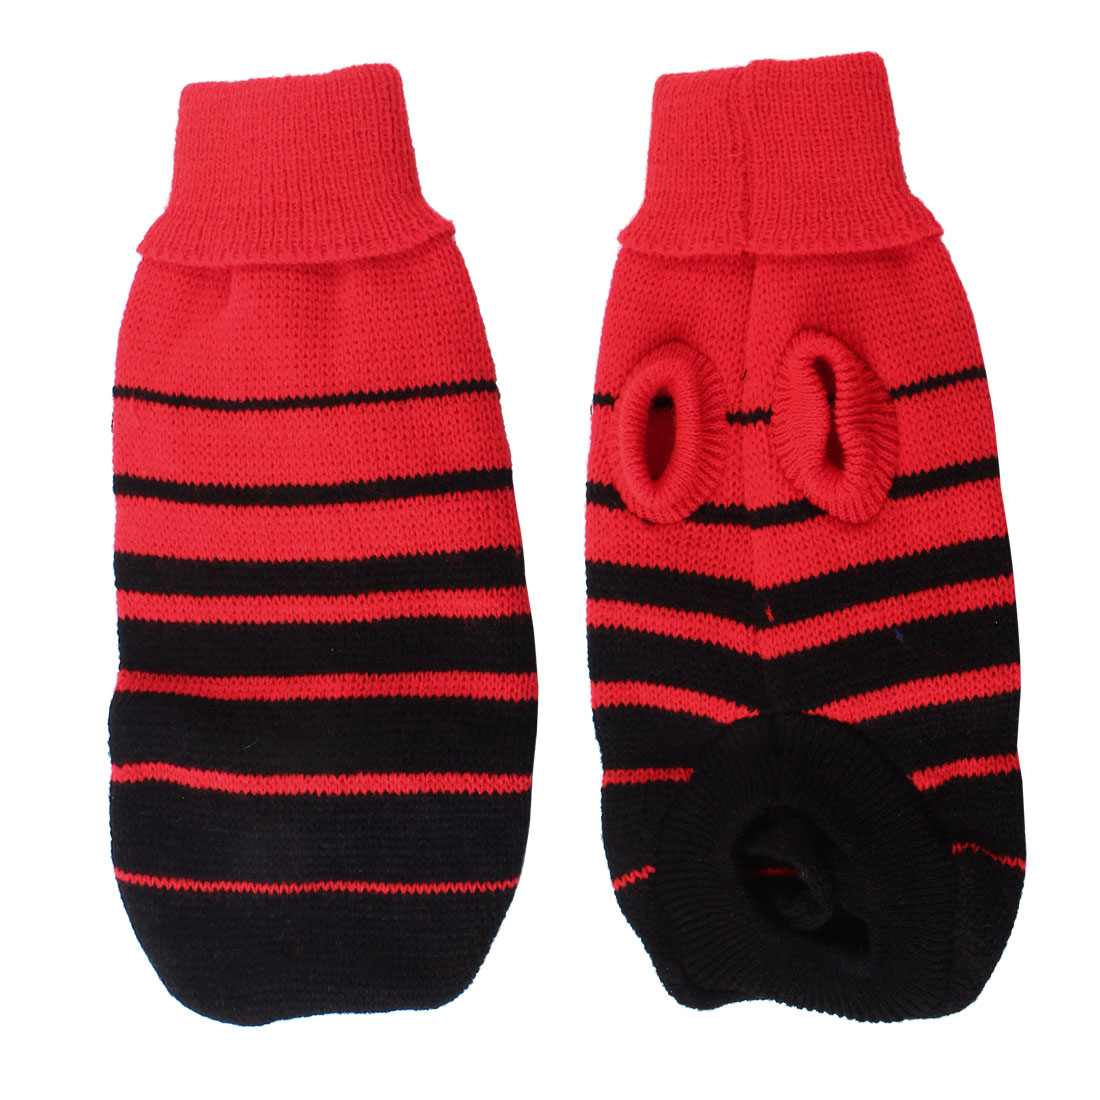 Pet Dog Doggie Red Black Knitting Striped Turtleneck Costume Apparel Sweater XXS